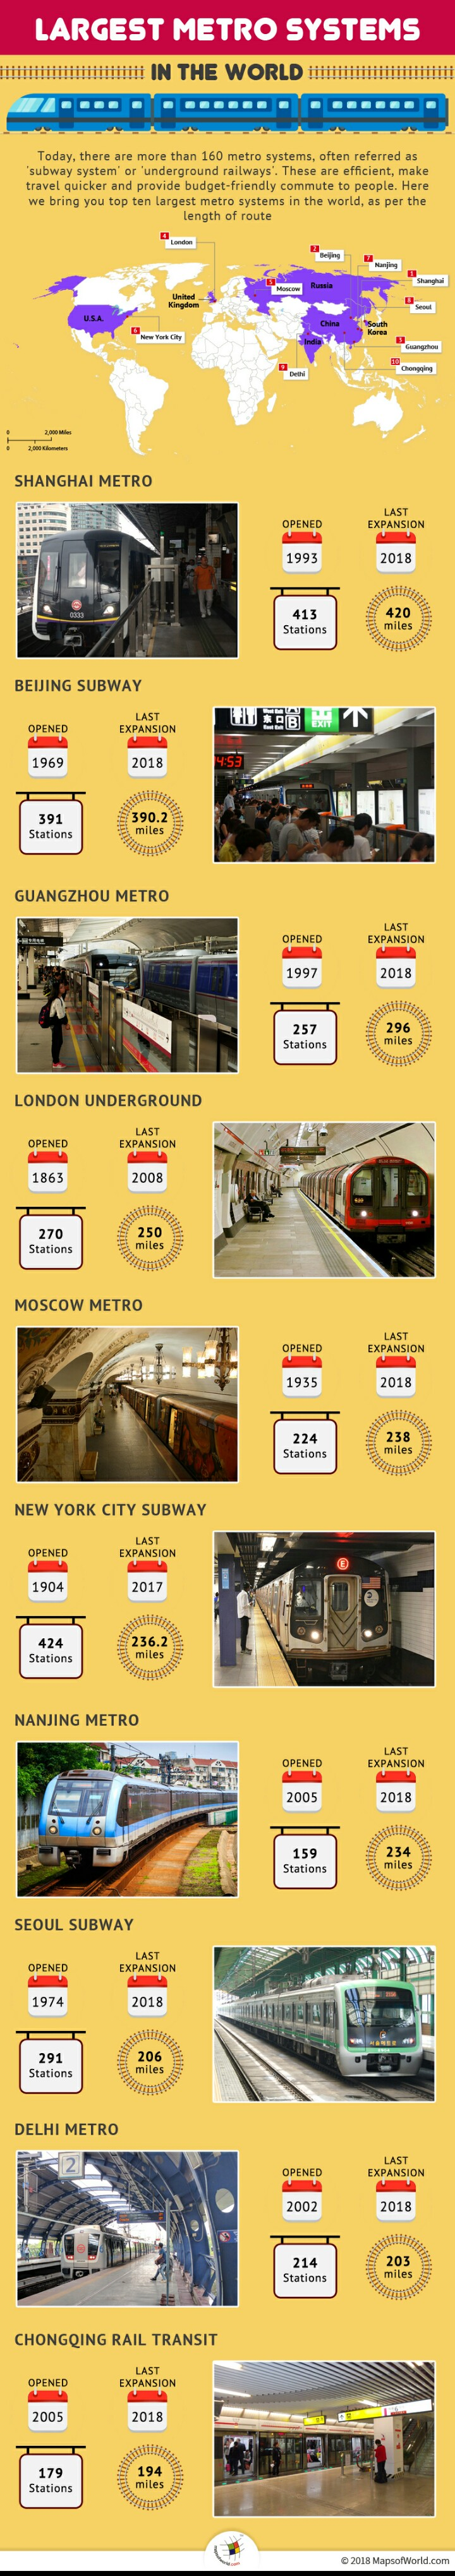 Infographic depicting ten largest metro systems